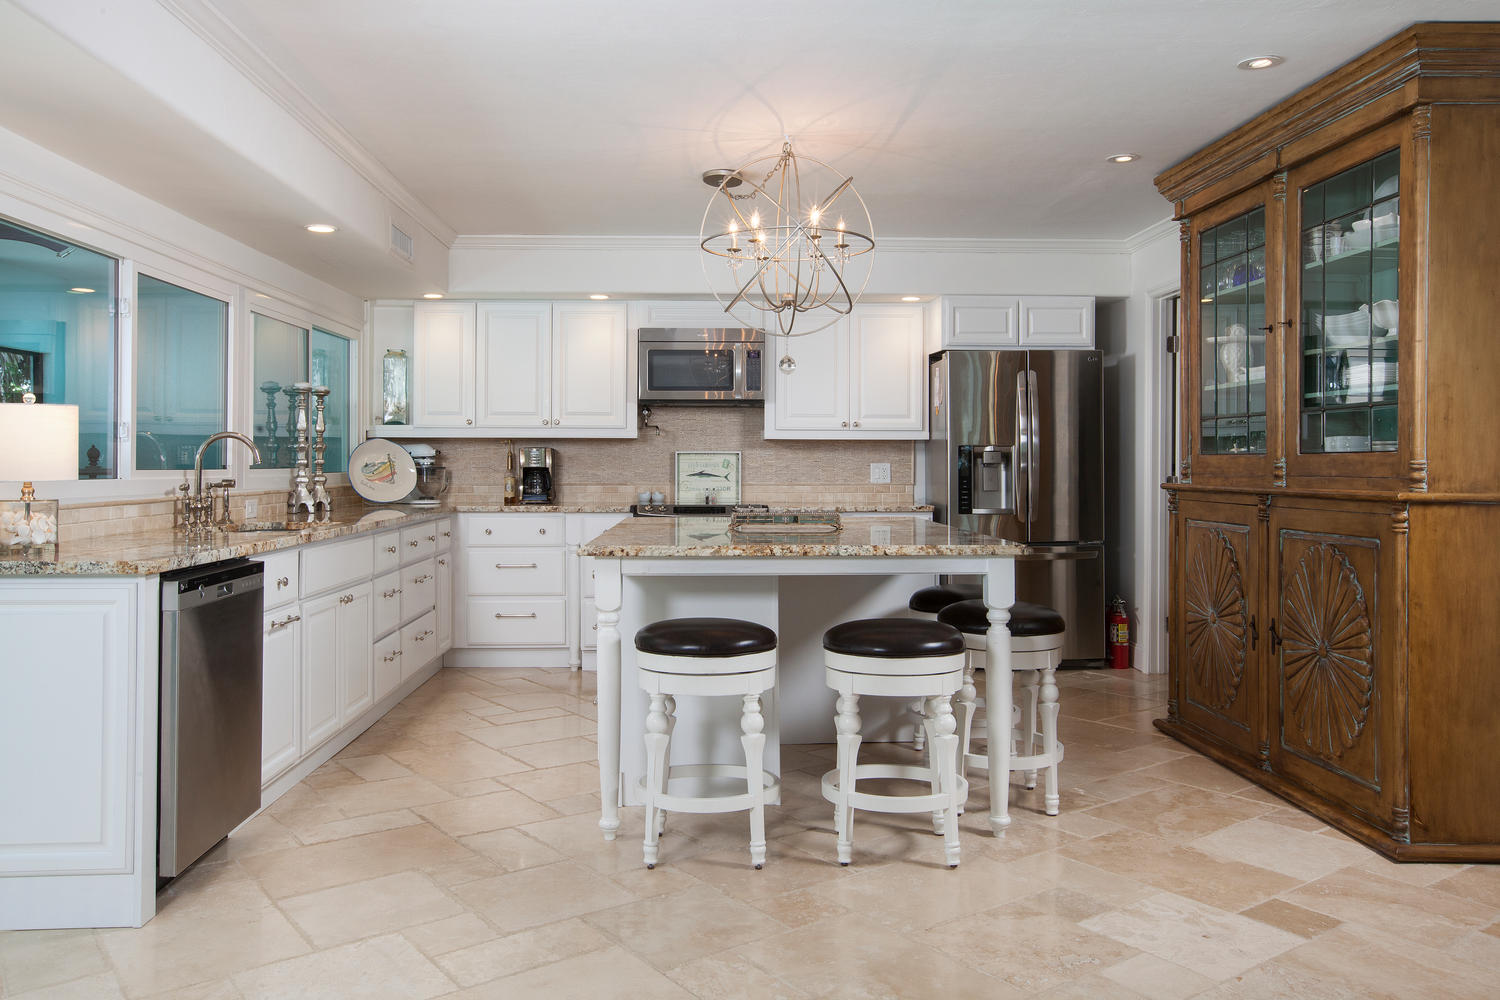 5245 Williams Drive Kitchen Before and After Renovation